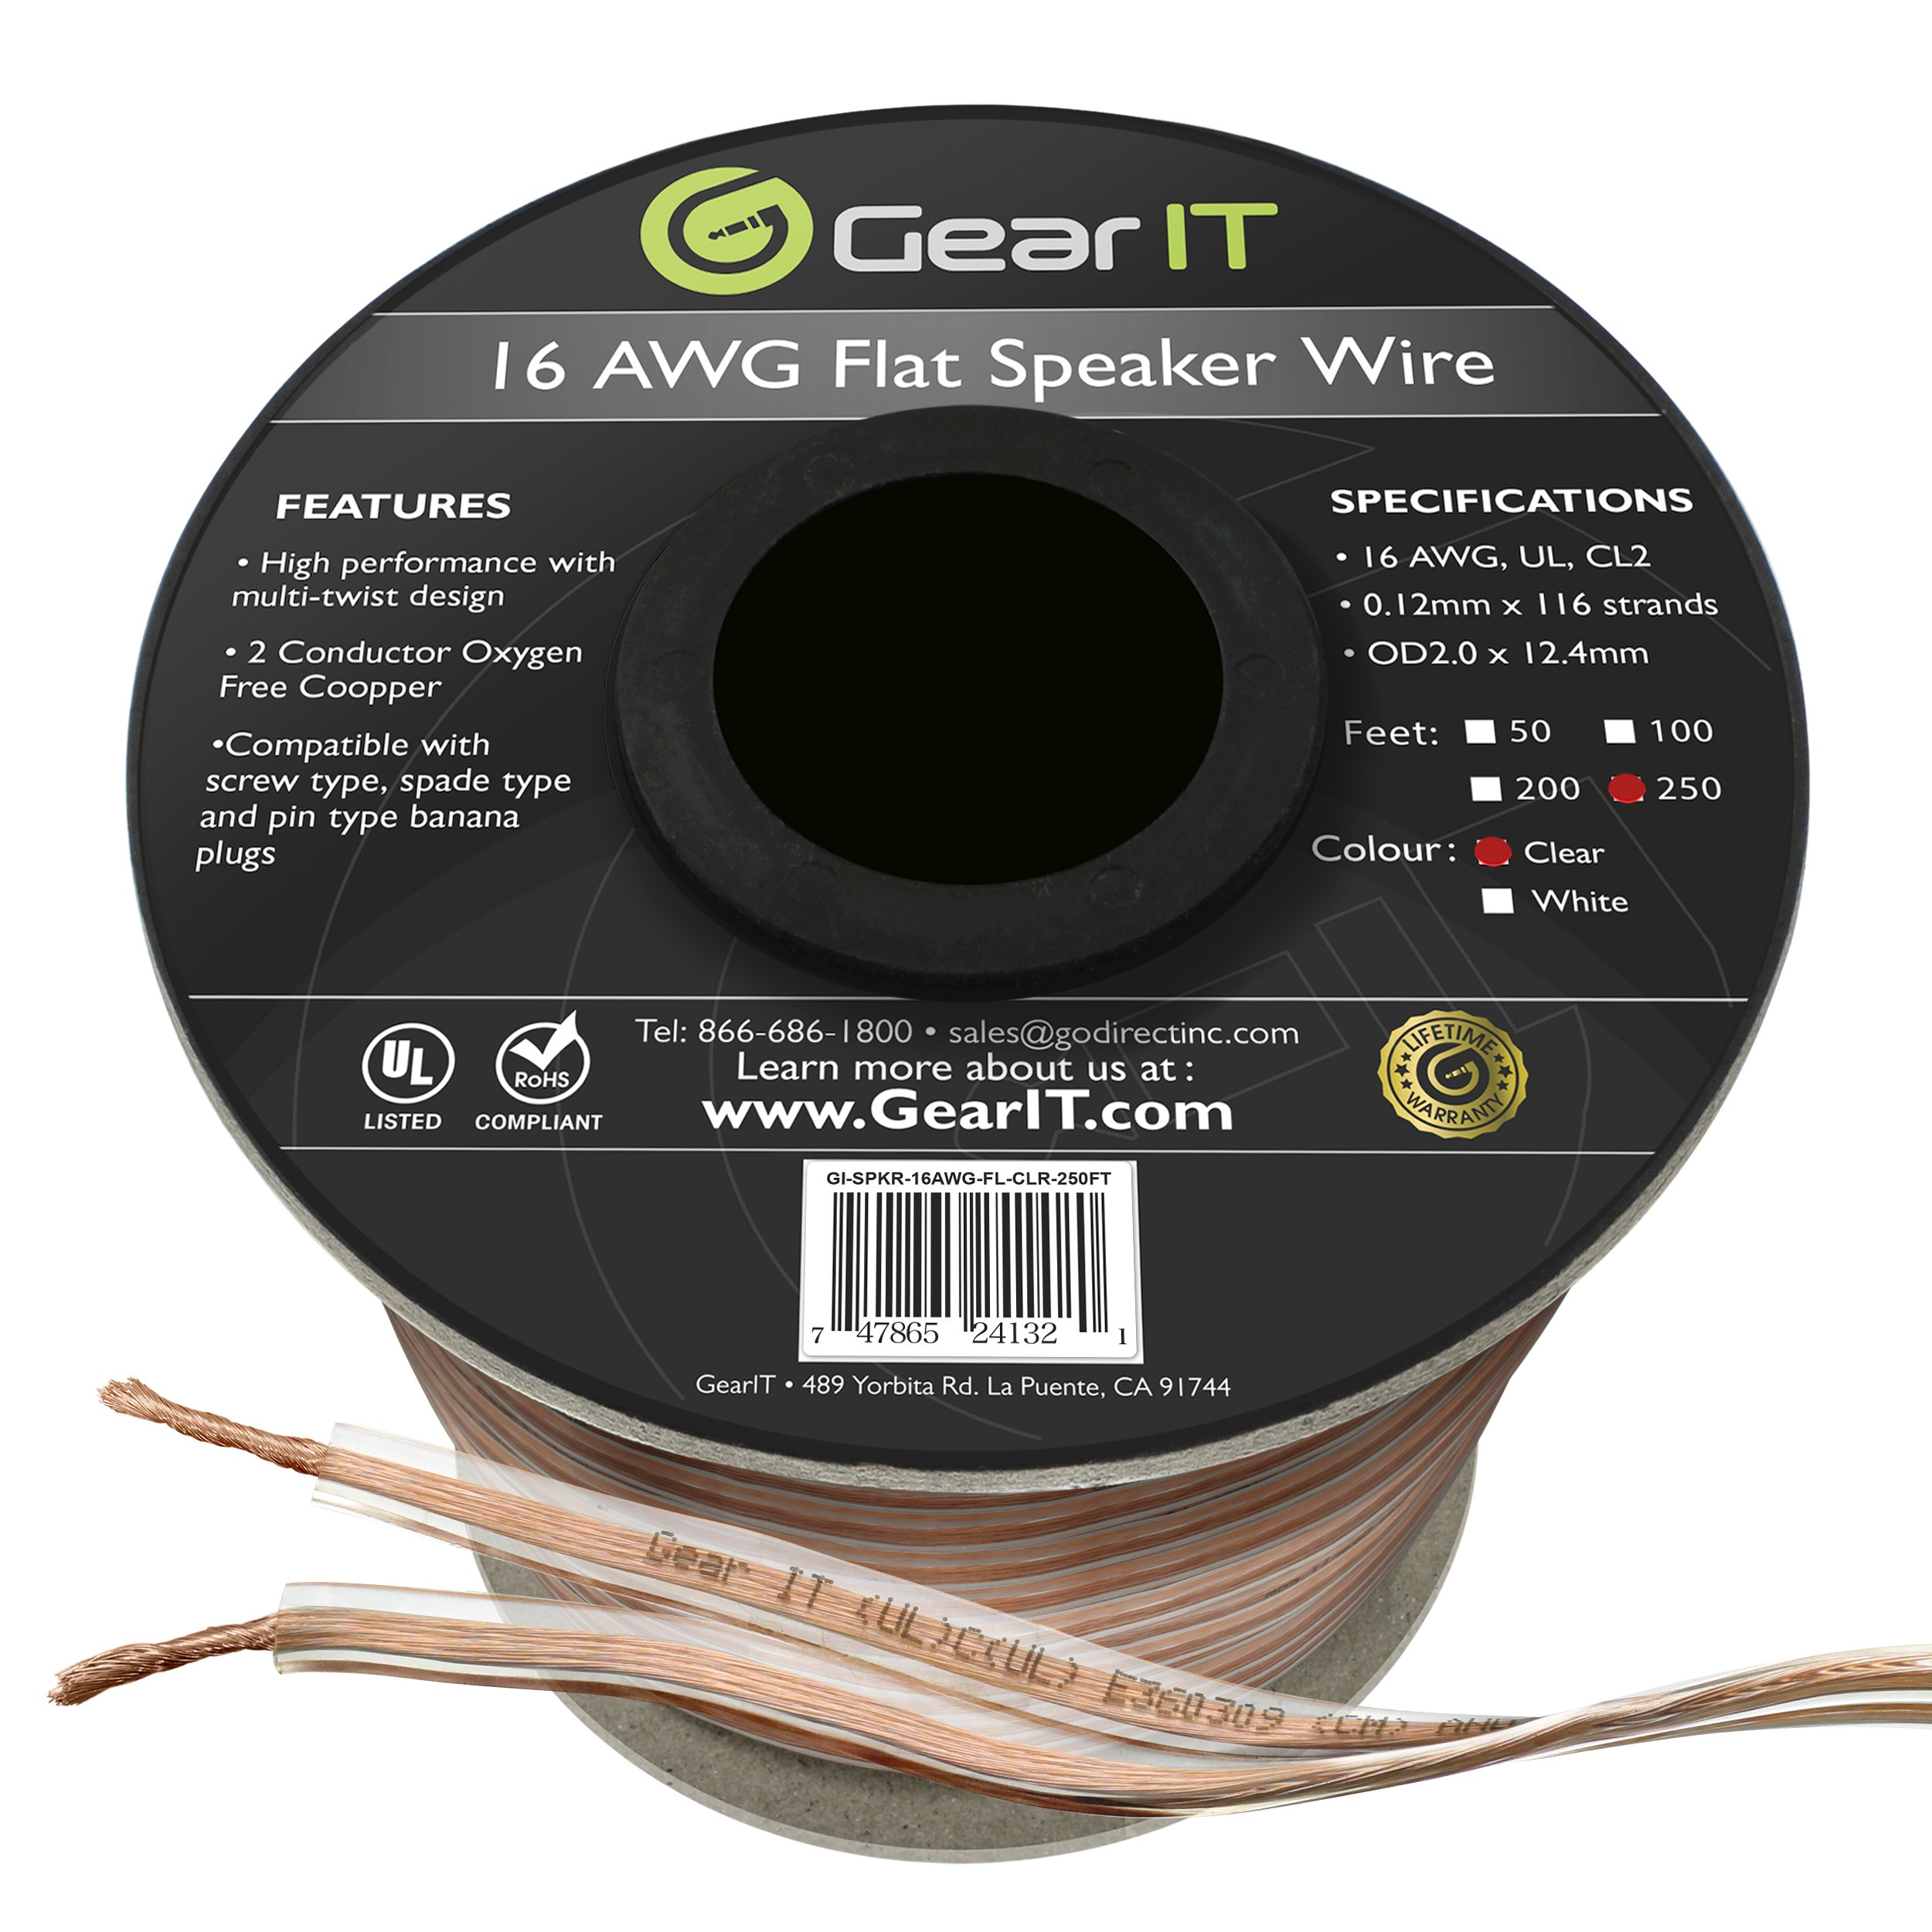 GearIT Elite Series 16AWG Flat Speaker Wire (250 Feet/76 Meters) - Oxygen Free Copper (OFC) CL2 Rated In-Wall Installation for Home Theater, Car Audio, and Outdoor Use, Clear